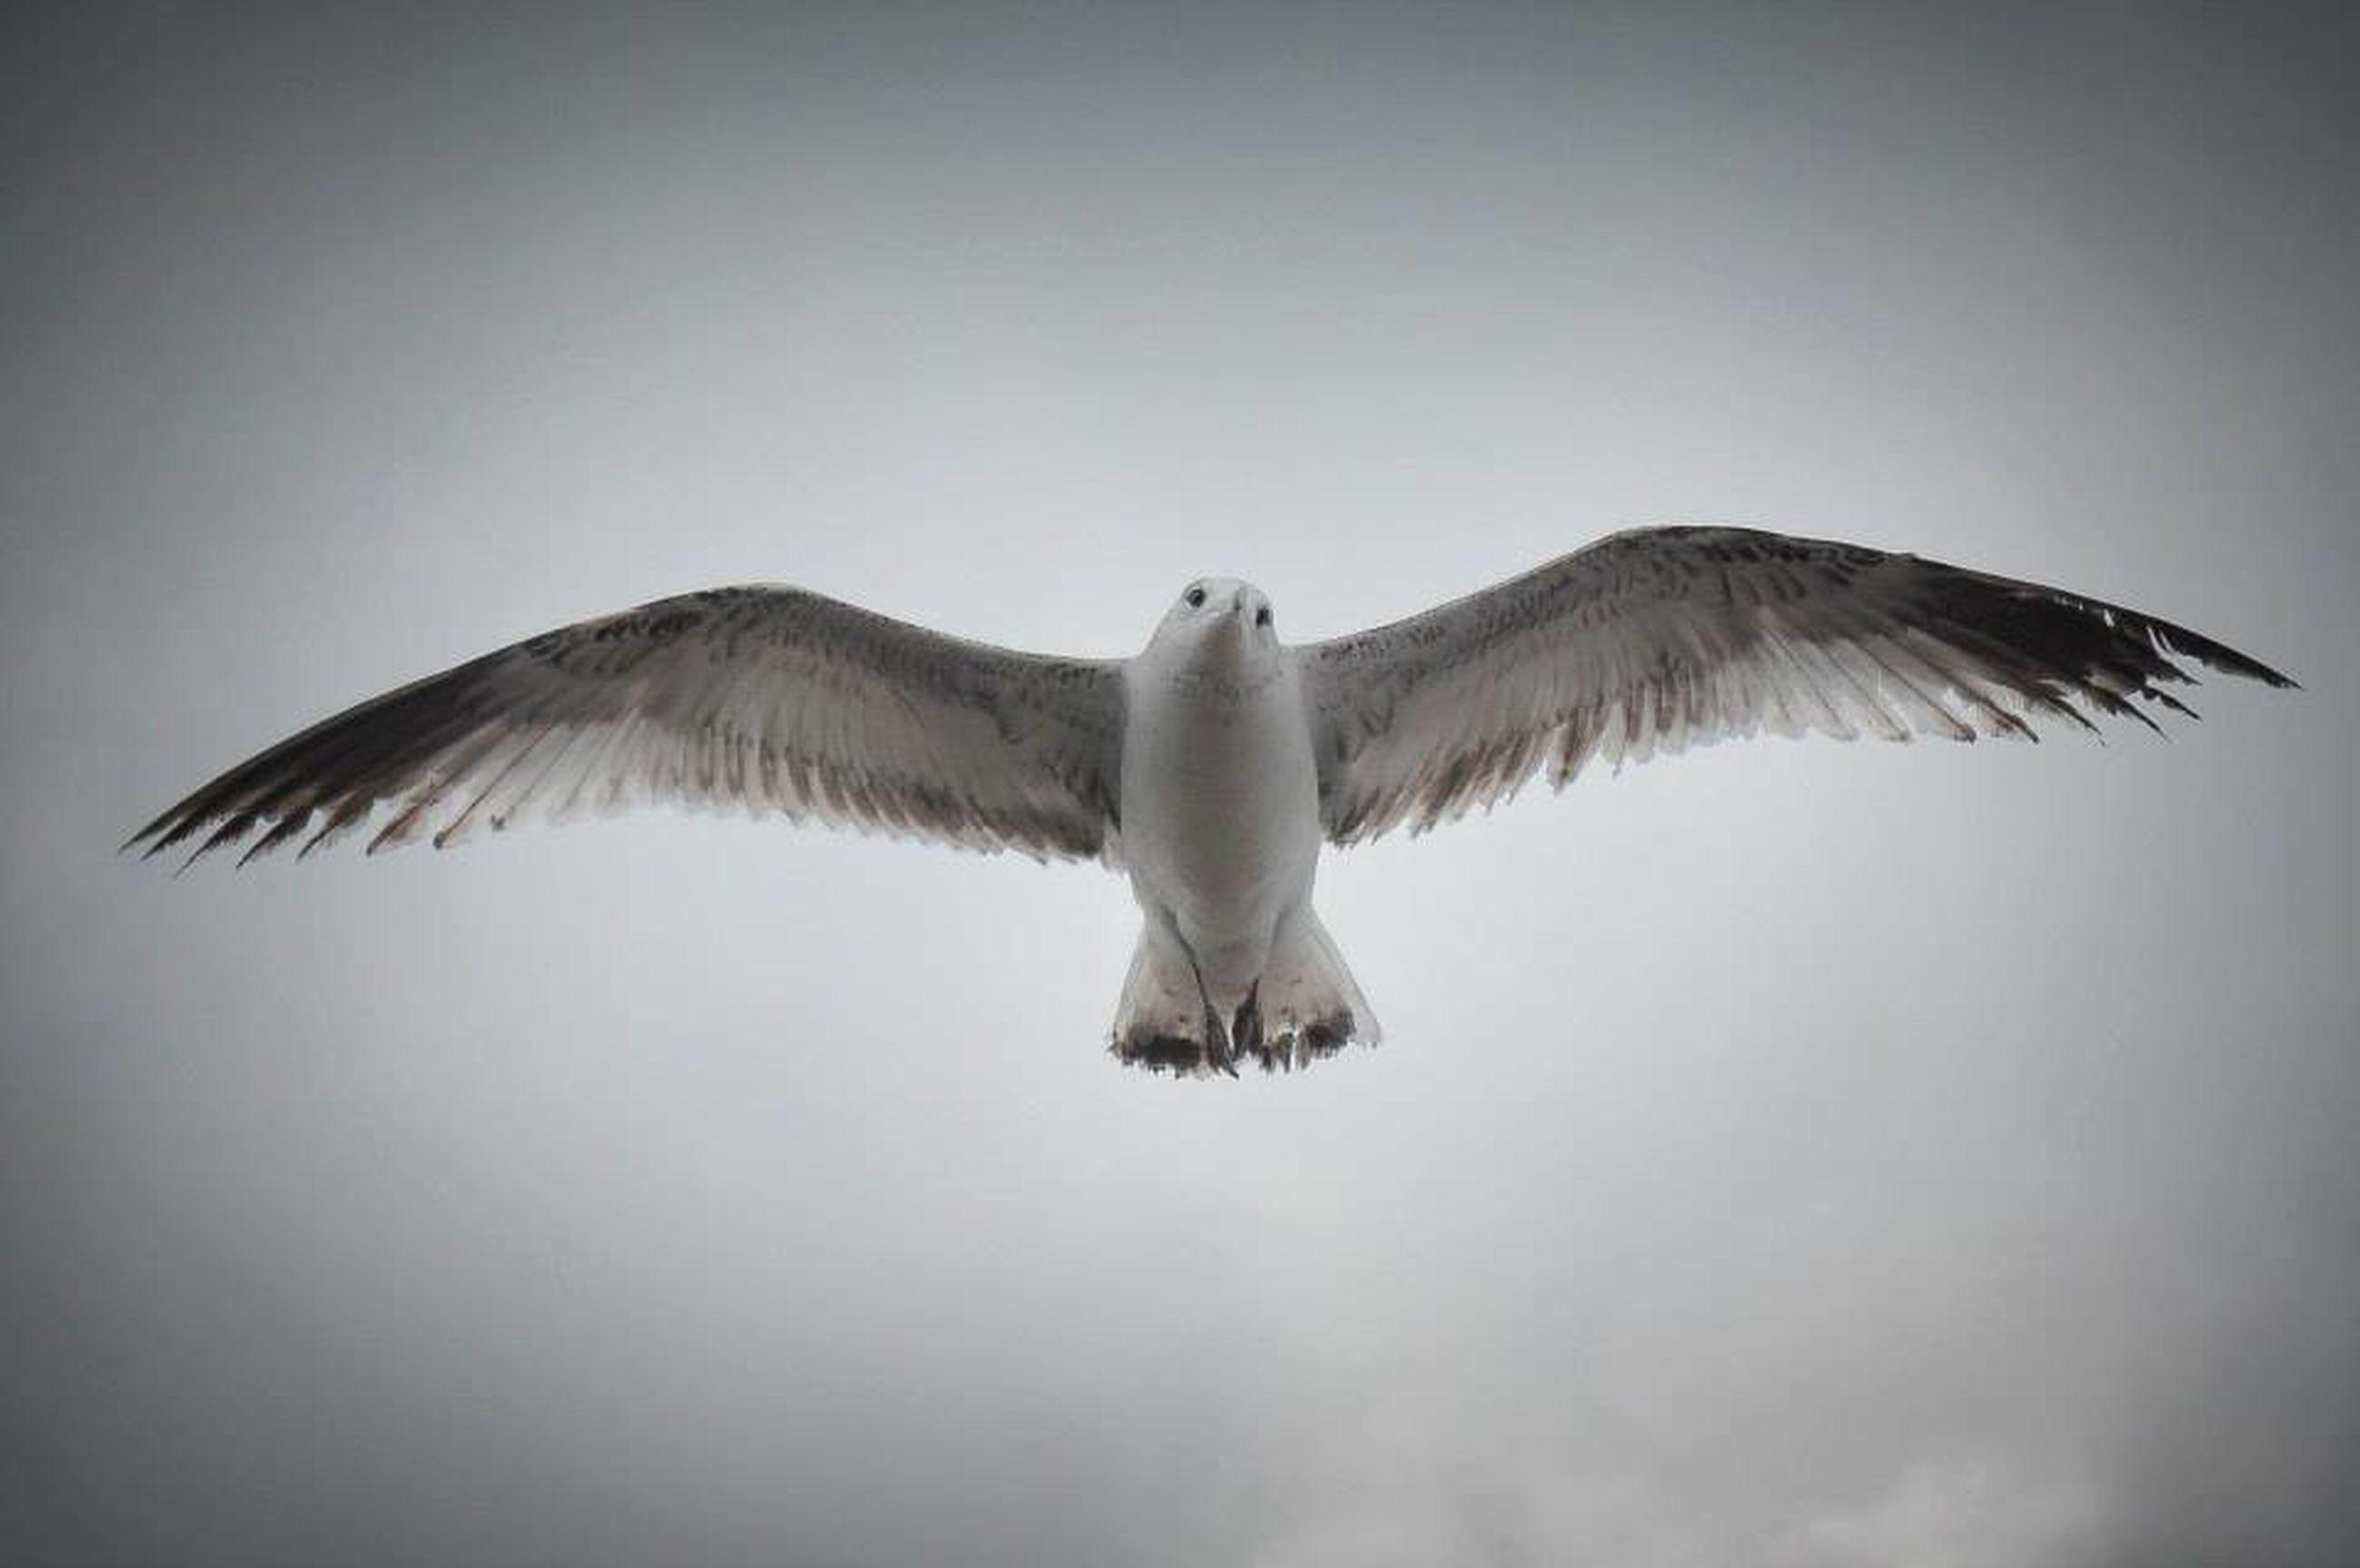 bird, clear sky, one animal, low angle view, copy space, animal themes, spread wings, seagull, wildlife, animals in the wild, flying, full length, nature, white color, sky, day, no people, outdoors, auto post production filter, side view